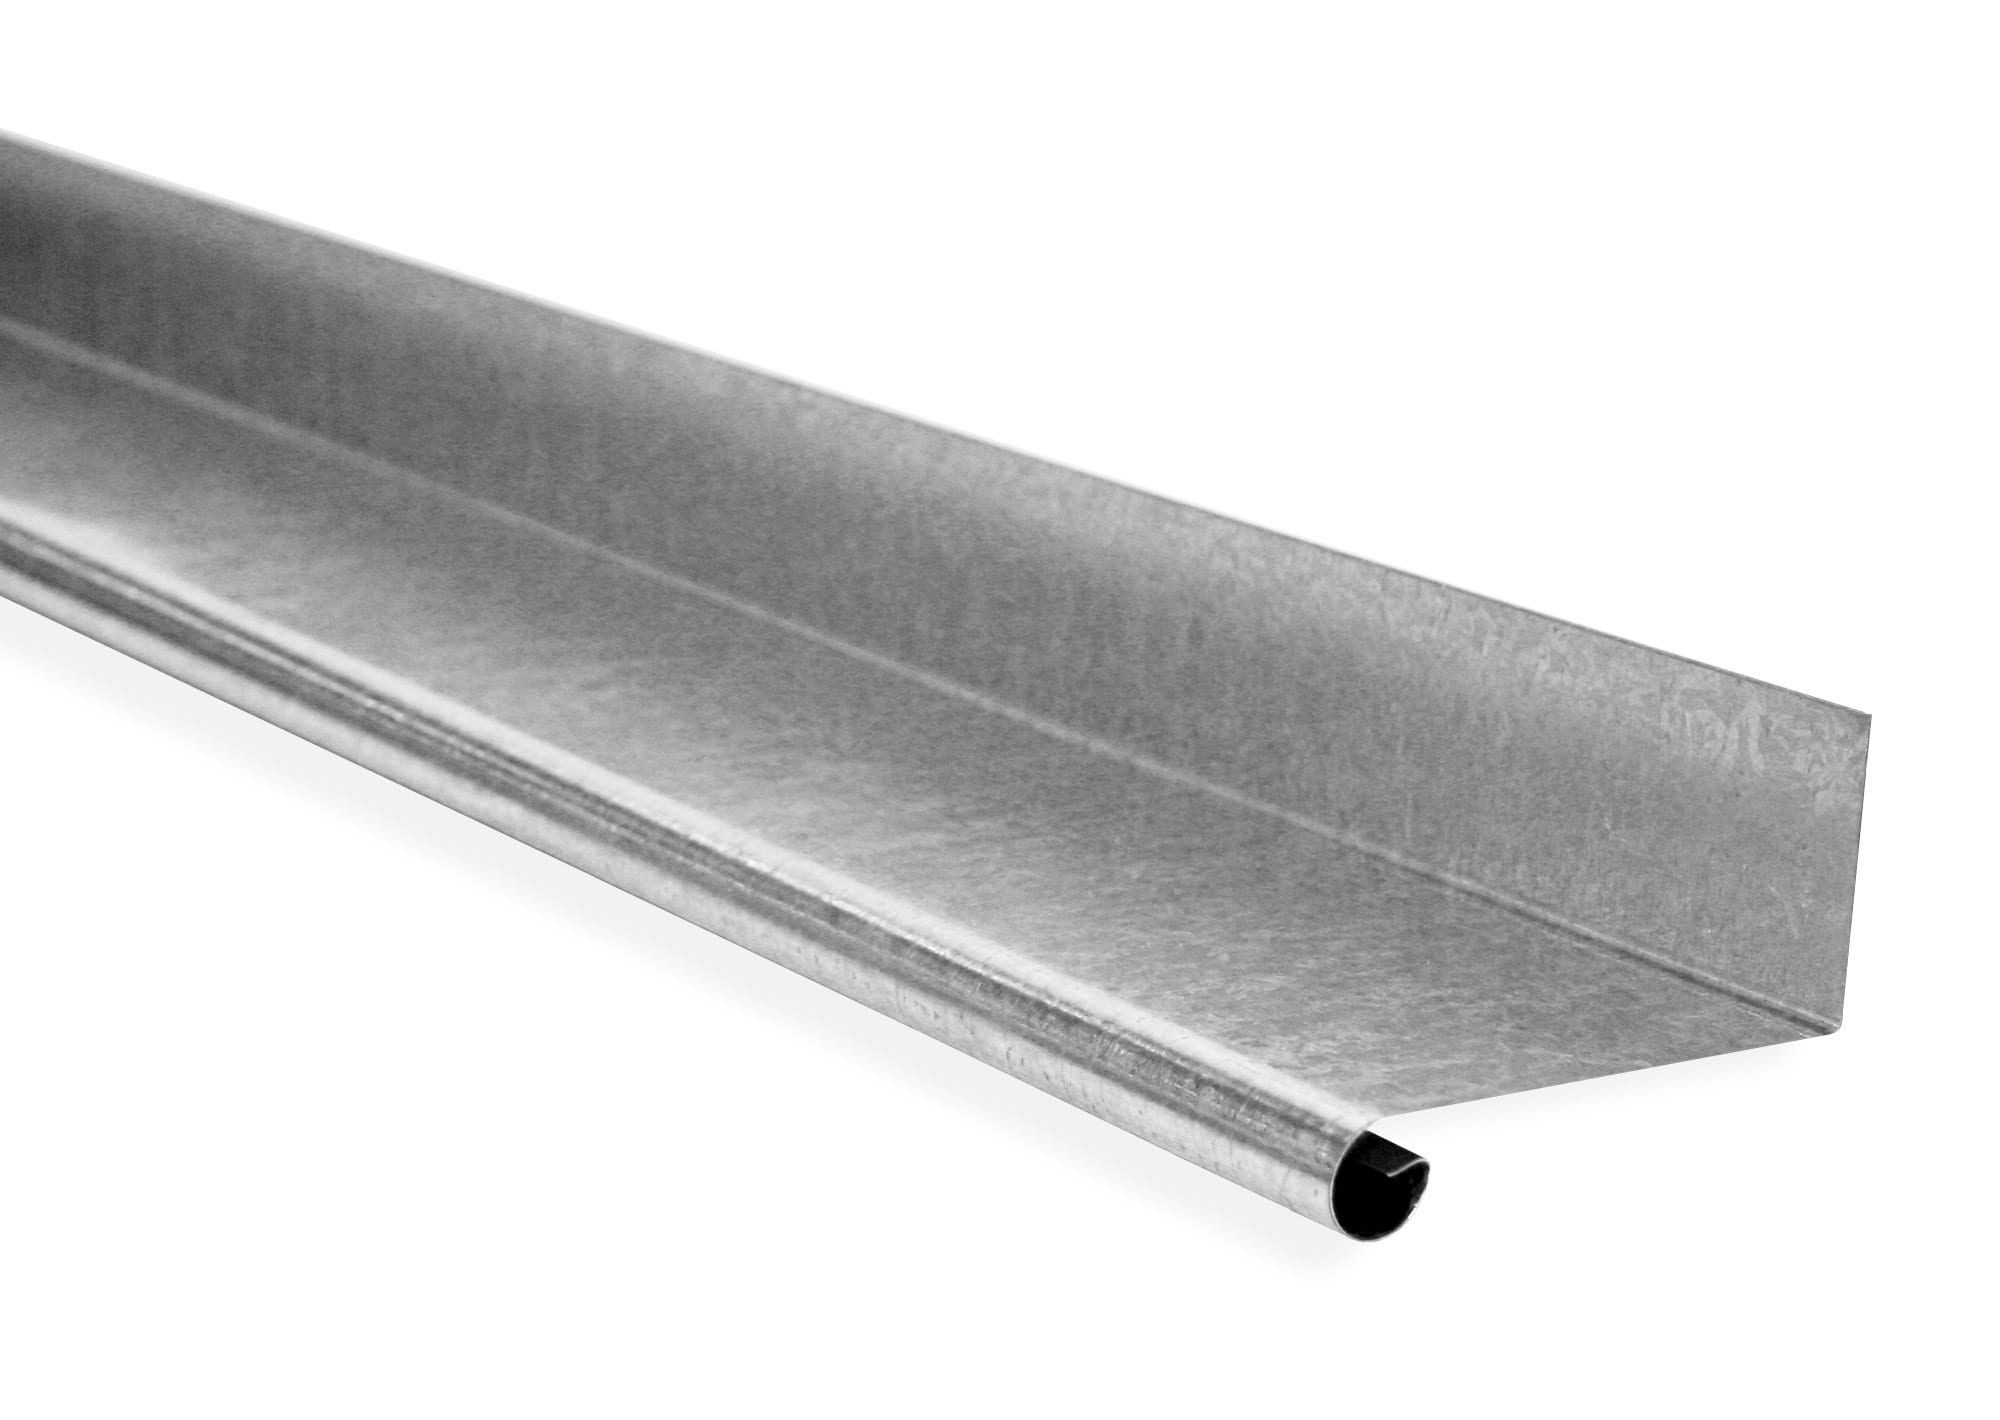 Standard galvanised window flashings from Queensland sheet metal